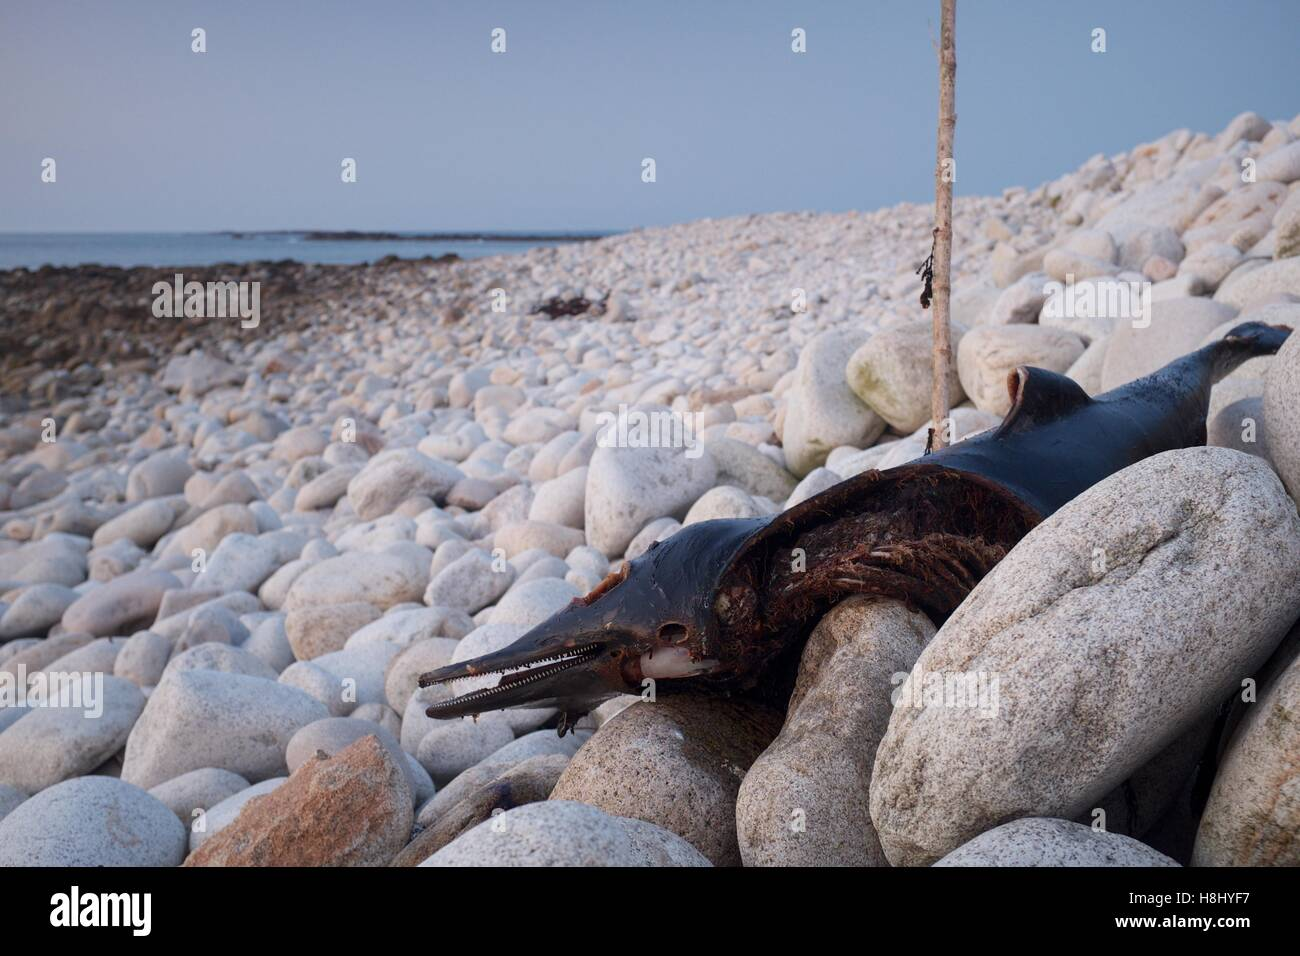 Dead cetacean washed ashore, Brittany - Stock Image